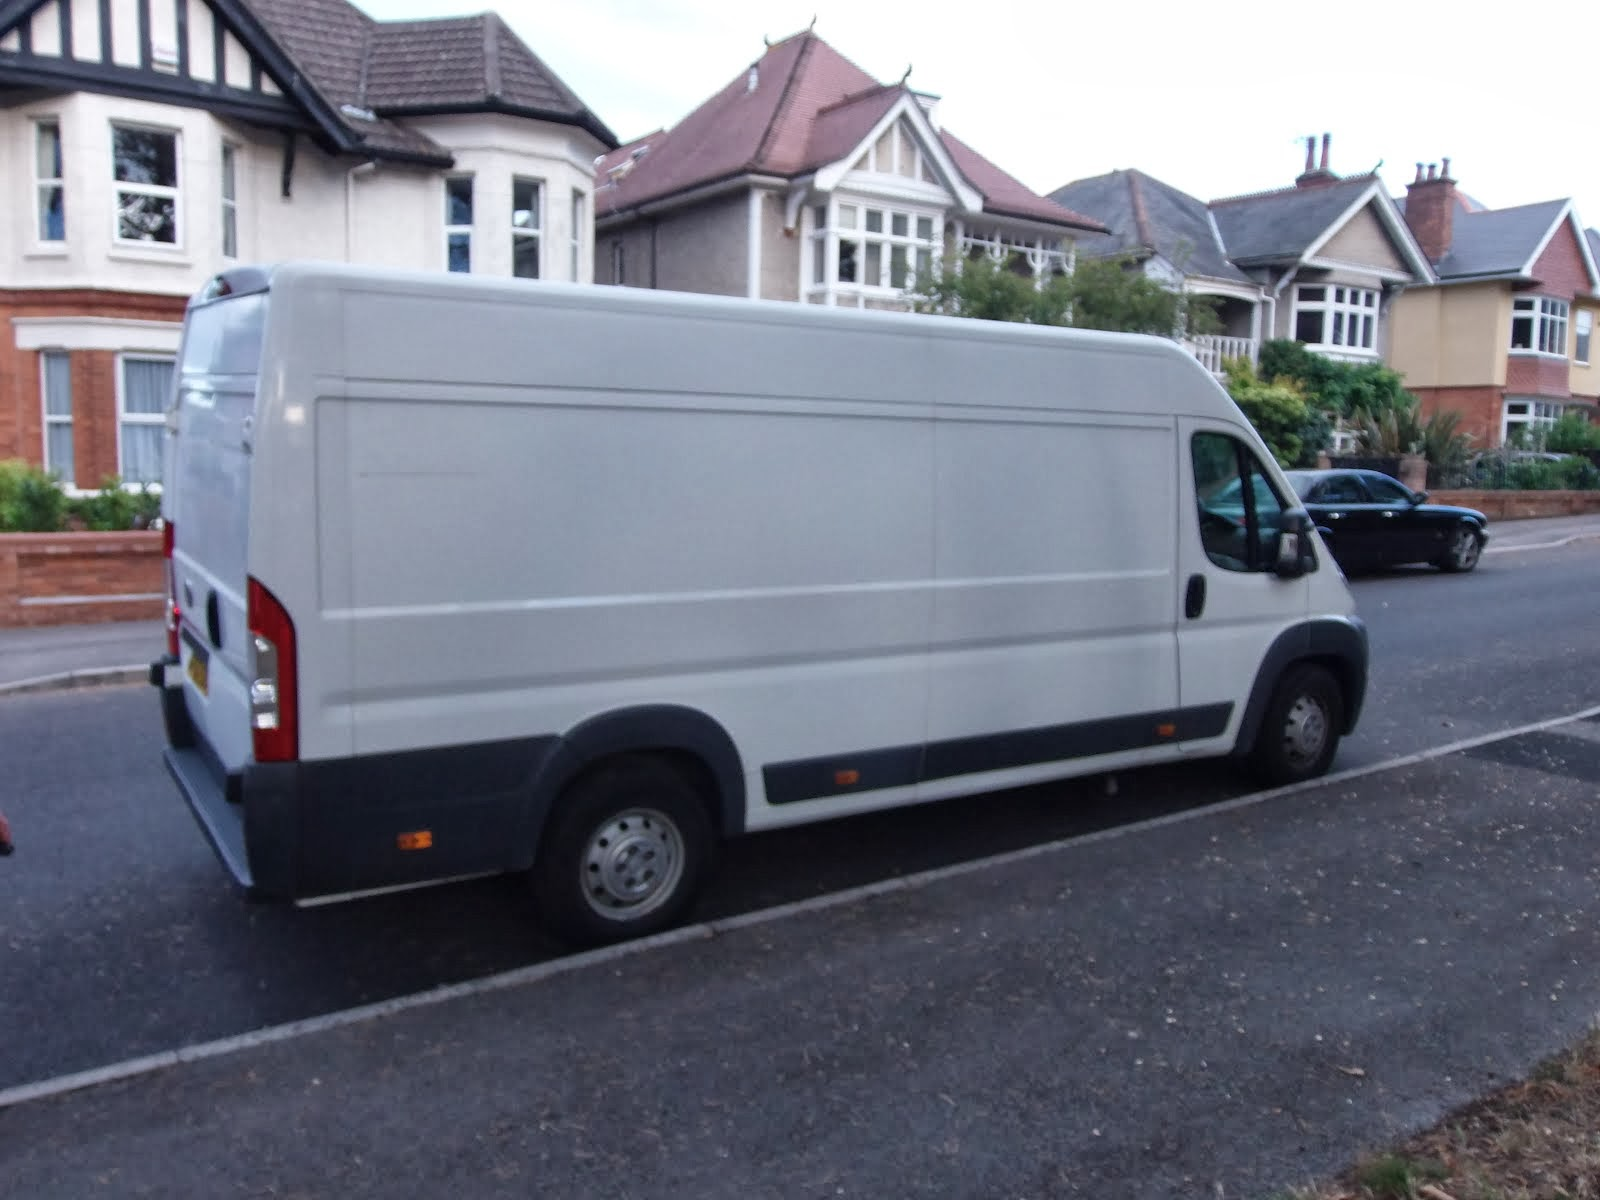 Our Van as of August 2013